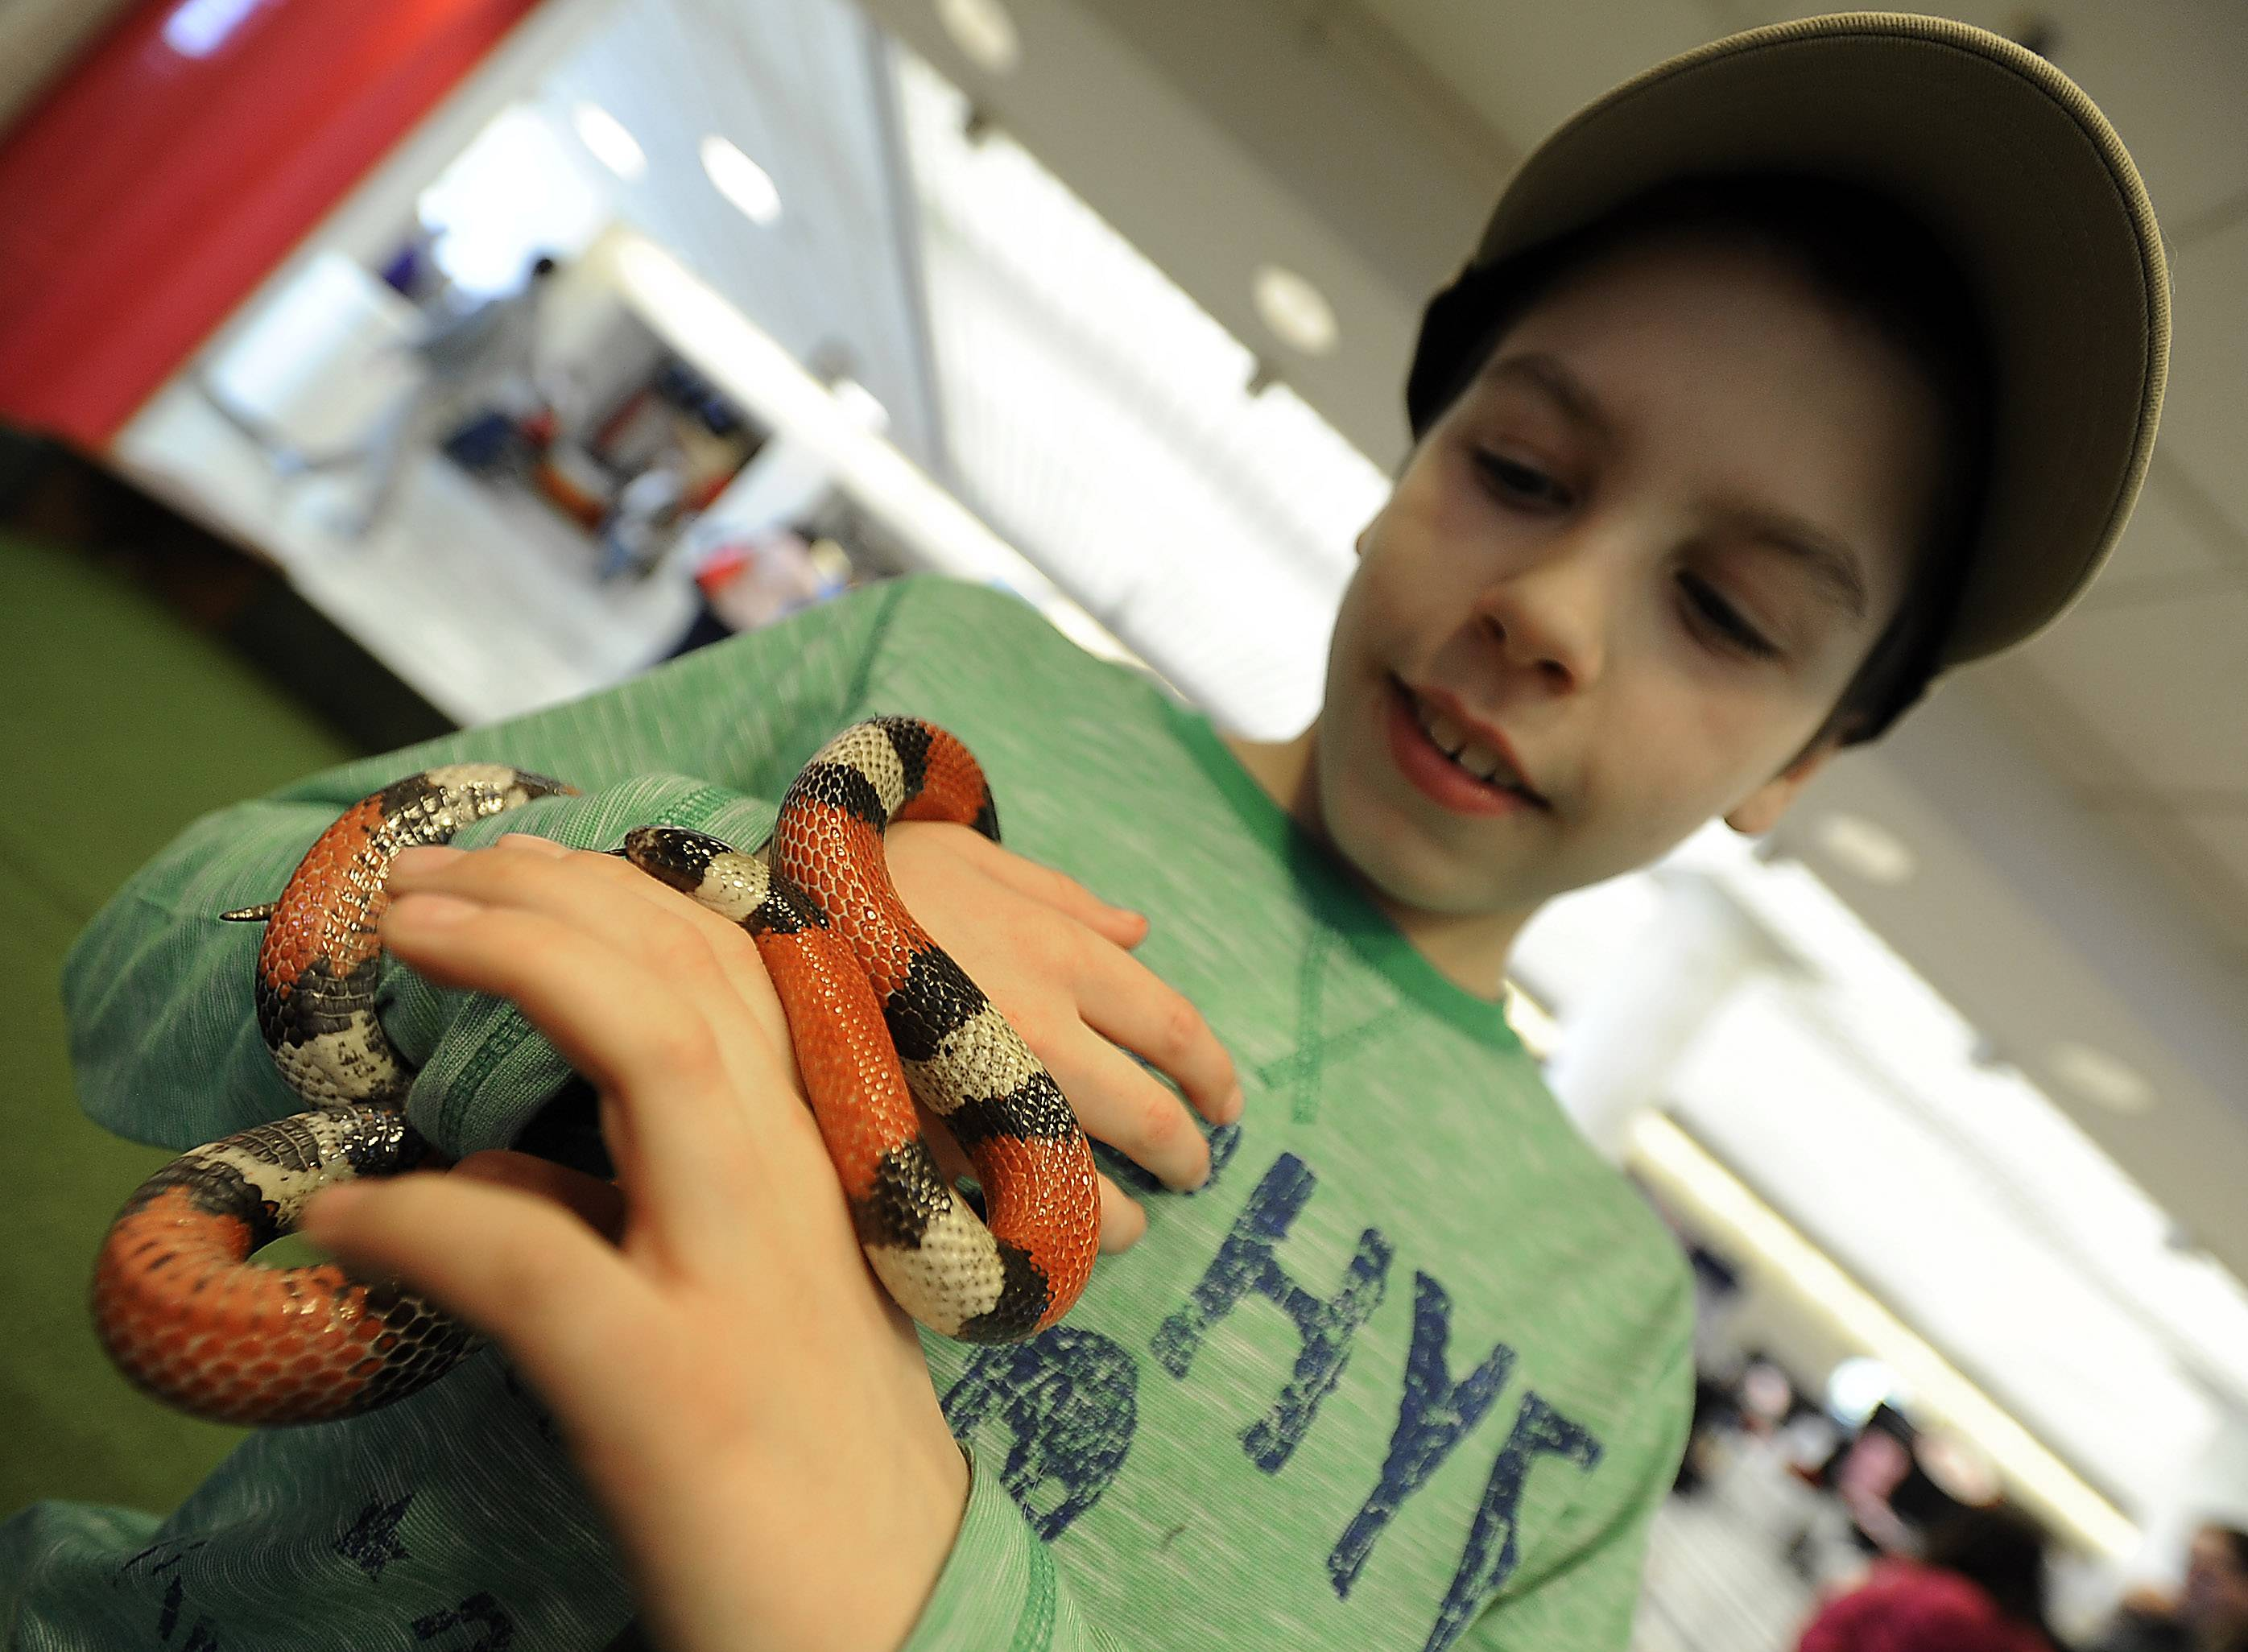 Gabriel Stefanski, 11, of Round Lake holds a milk snake for the first time in his life Friday at the Chicagoland Family Pet Expo at Arlington Park. This snake kept trying to hide in his shirt.